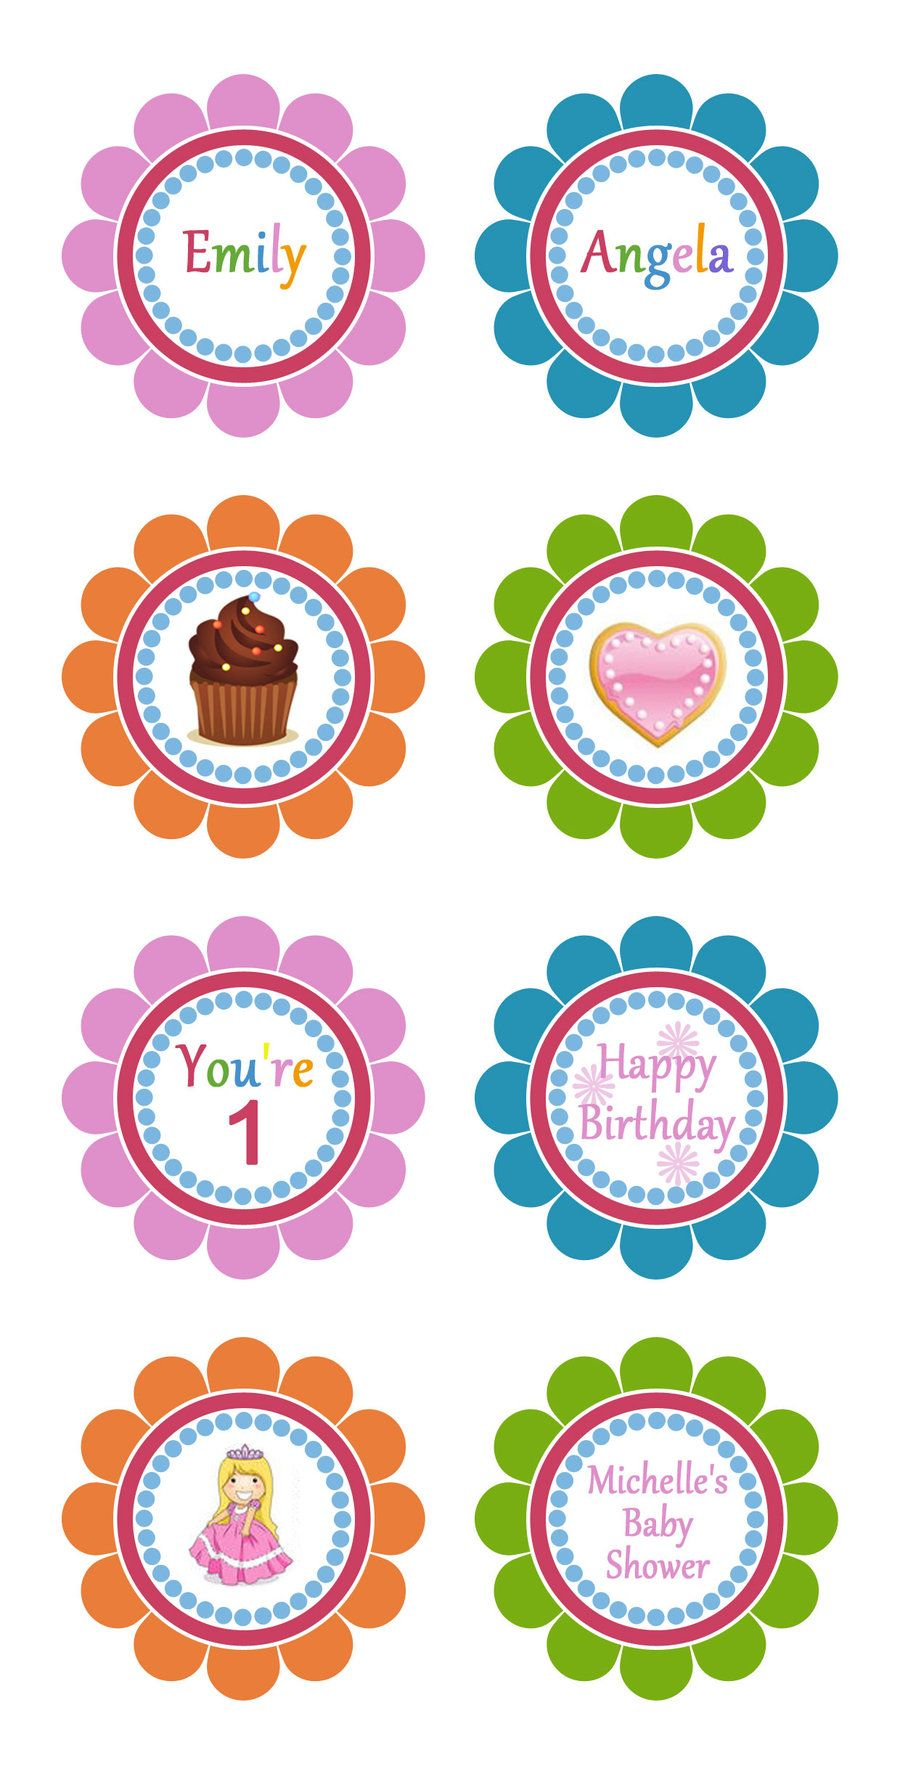 Cupcake Toppers Template By Danbradster On Deviantart Cupcake Toppers Template Cupcake Toppers Printable Cupcake Toppers Free